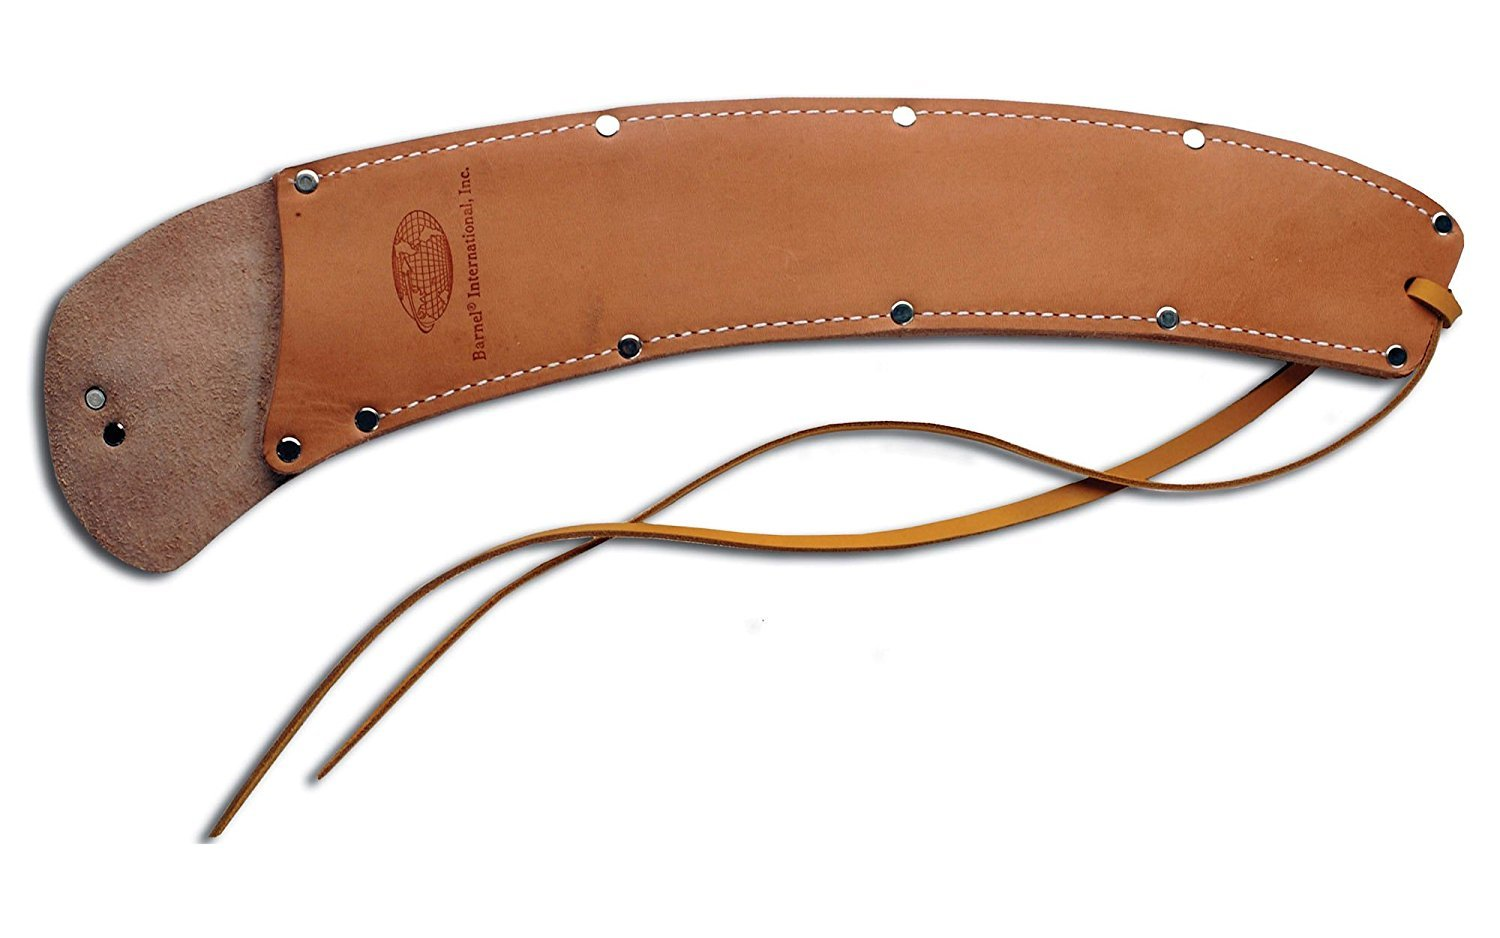 Barnel BLS937 19'' USA Leather Sheath for Z17 Saw by Barnel